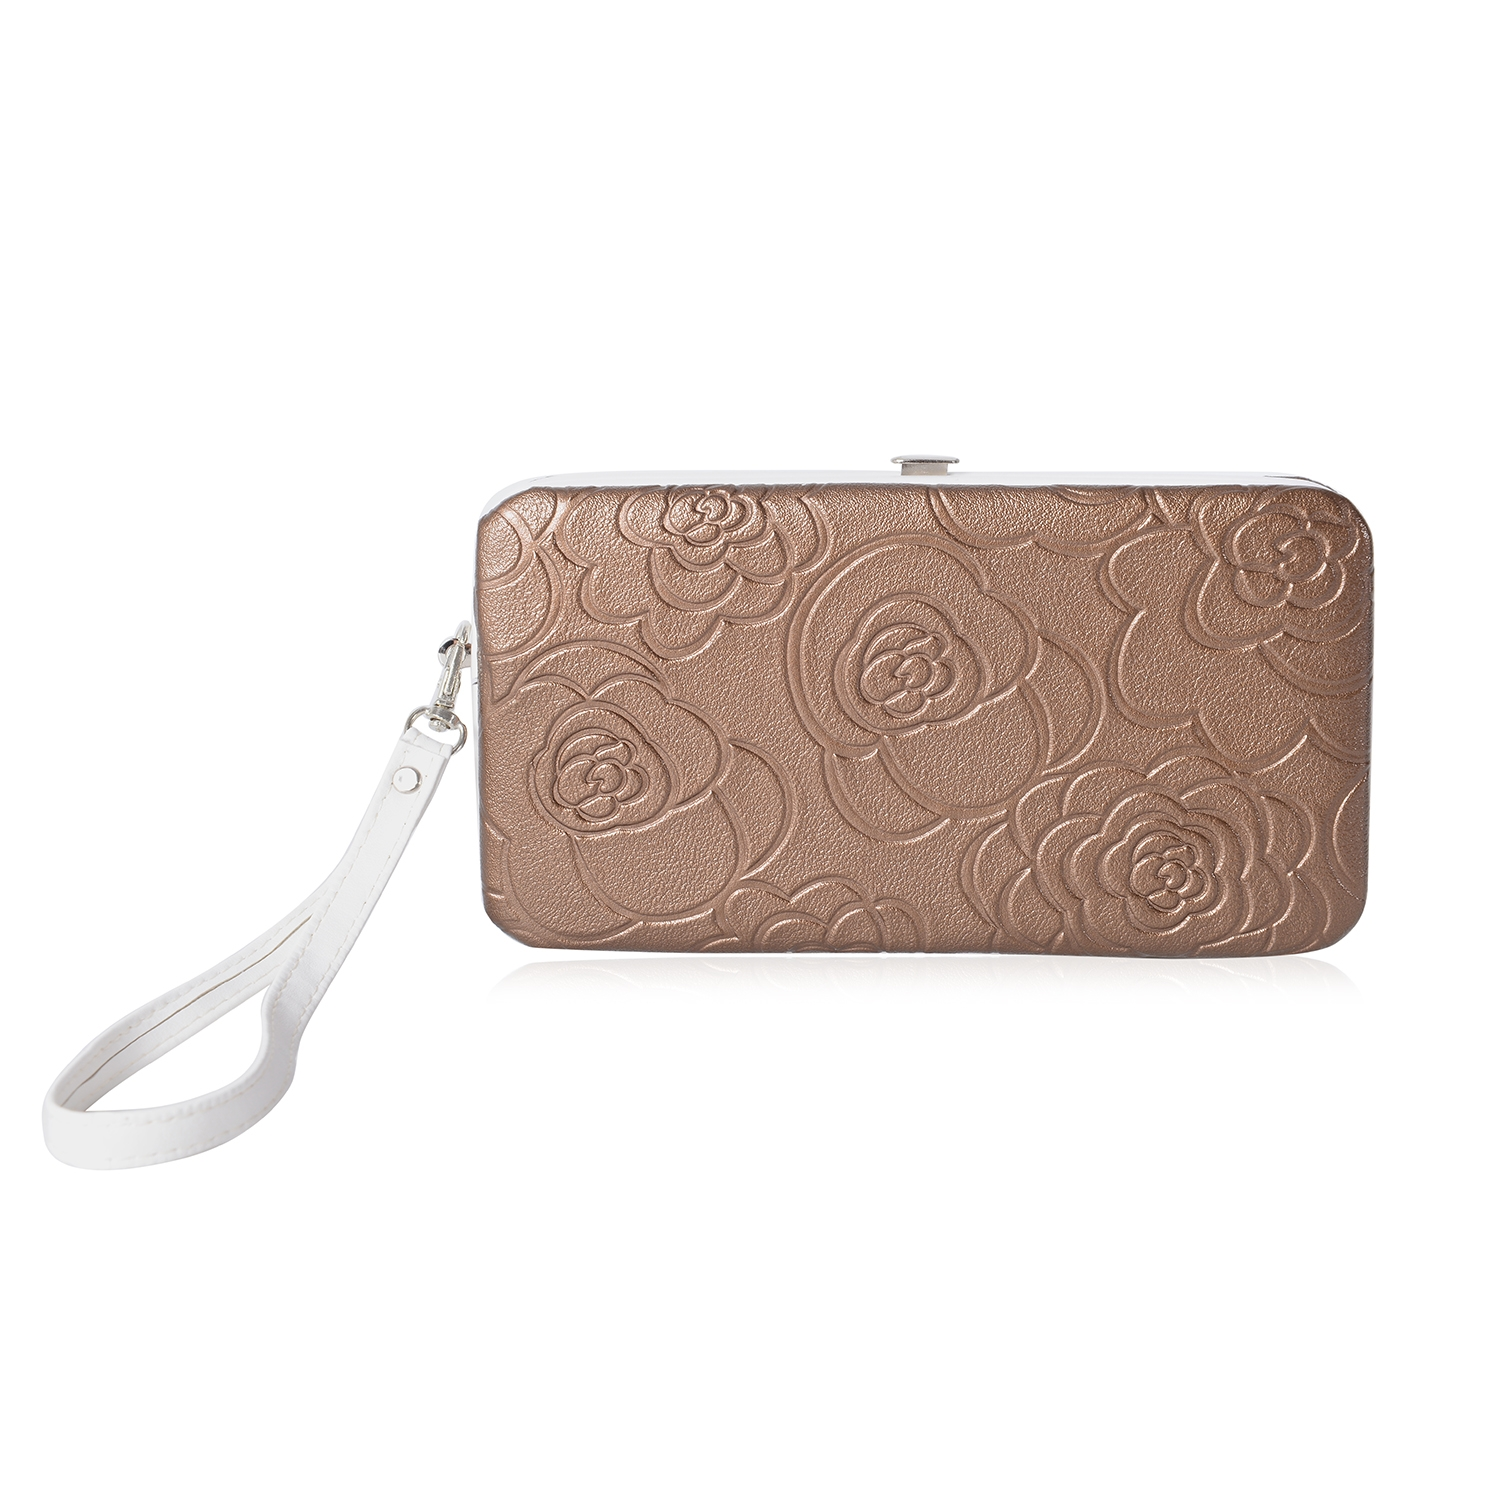 Bronze Faux Leather Rose Embossed Foldover Metallic Snap Wallet with  Removable Wristlet (7x1x3.5 c8dde087e050b